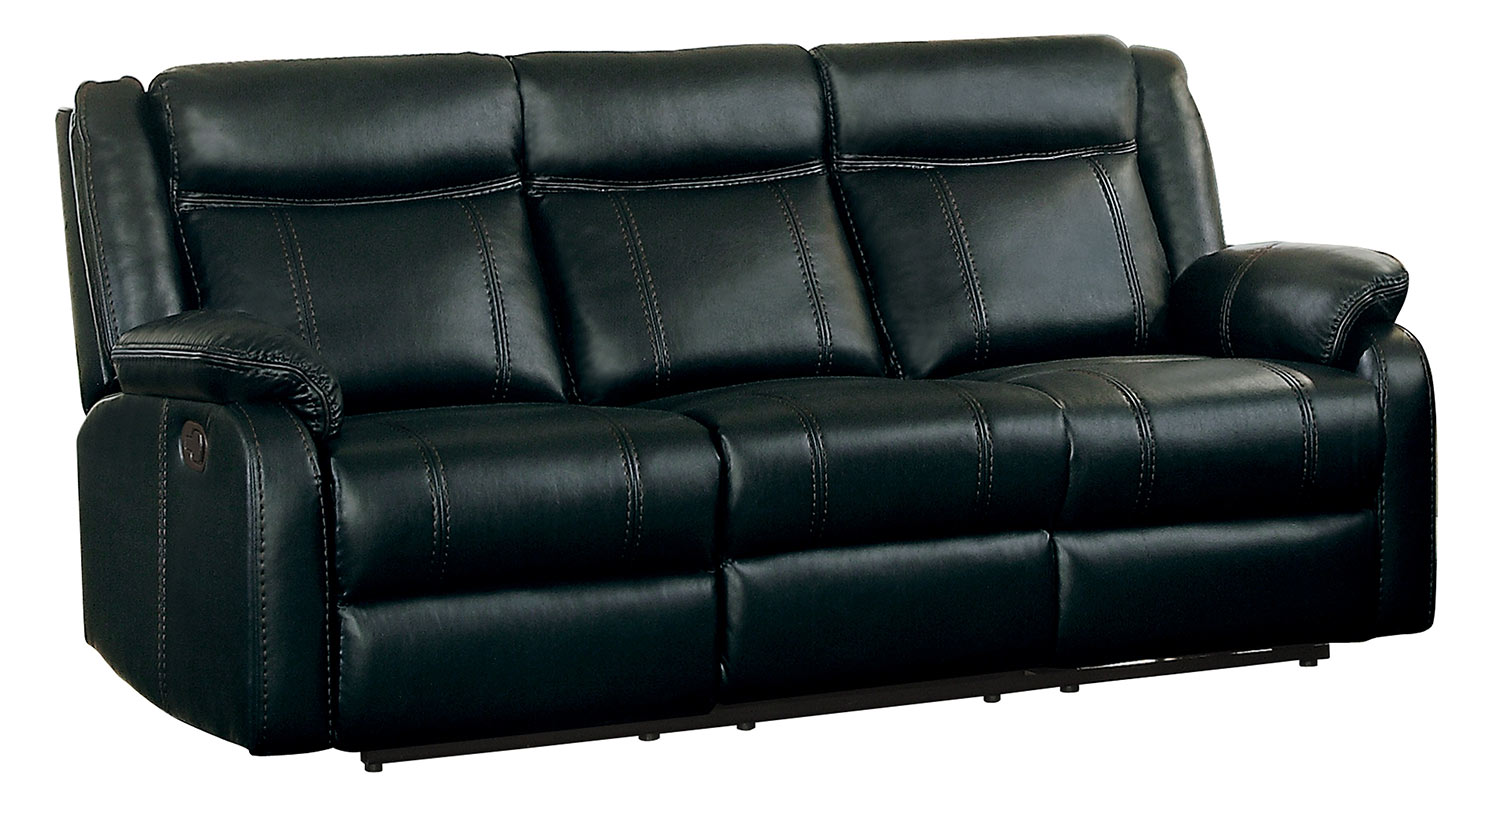 Homelegance Jude Double Reclining Sofa with Drop-Down Table - Black Leather Gel Match